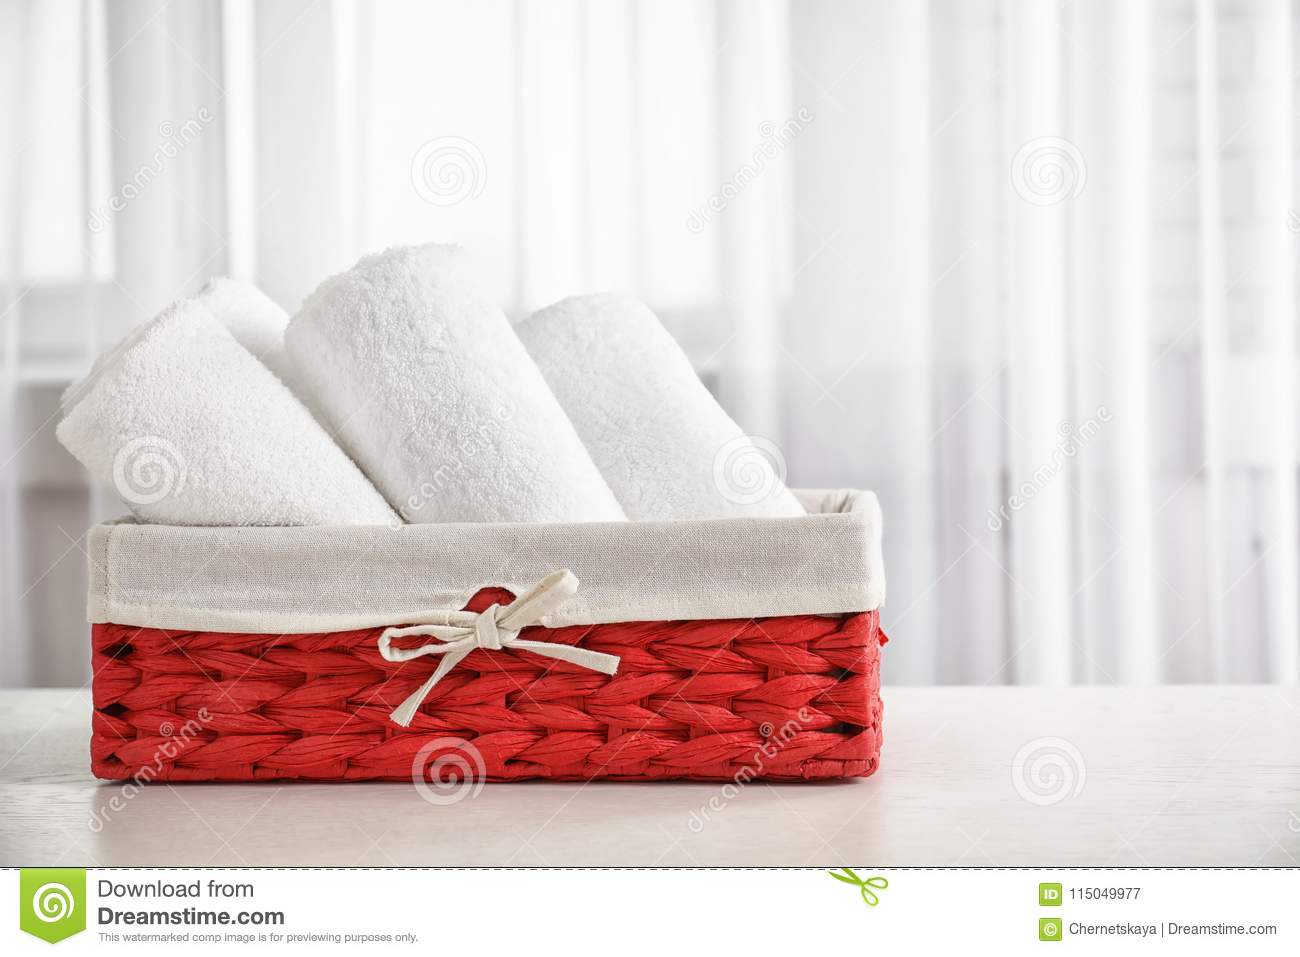 Basket with clean towels